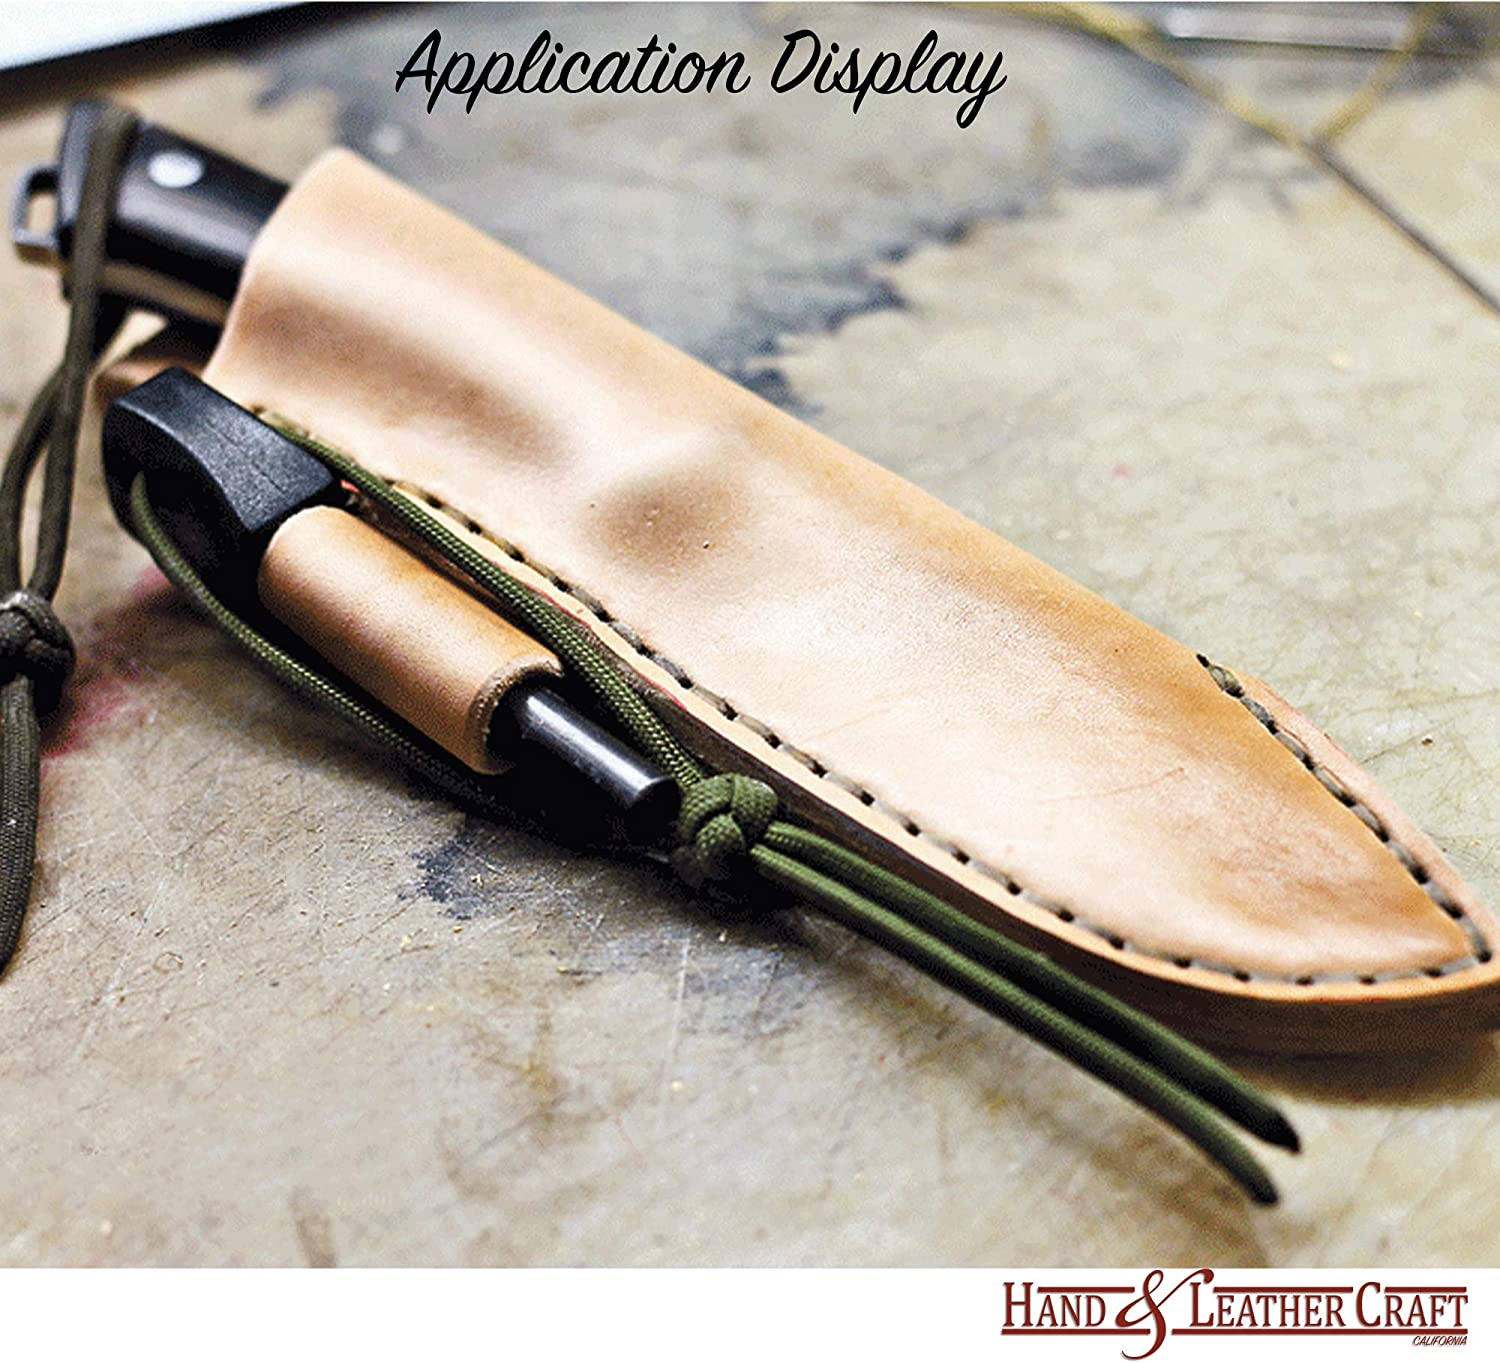 Tooling 3.2-3.6mm Full Grain Vegetable Tanned Leather Carving Veg Tan Leather 8//9 oz A Grade Tooling Leather Hide Dyeing 4 Sqft Molding 24x24 Hand and Leather Craft